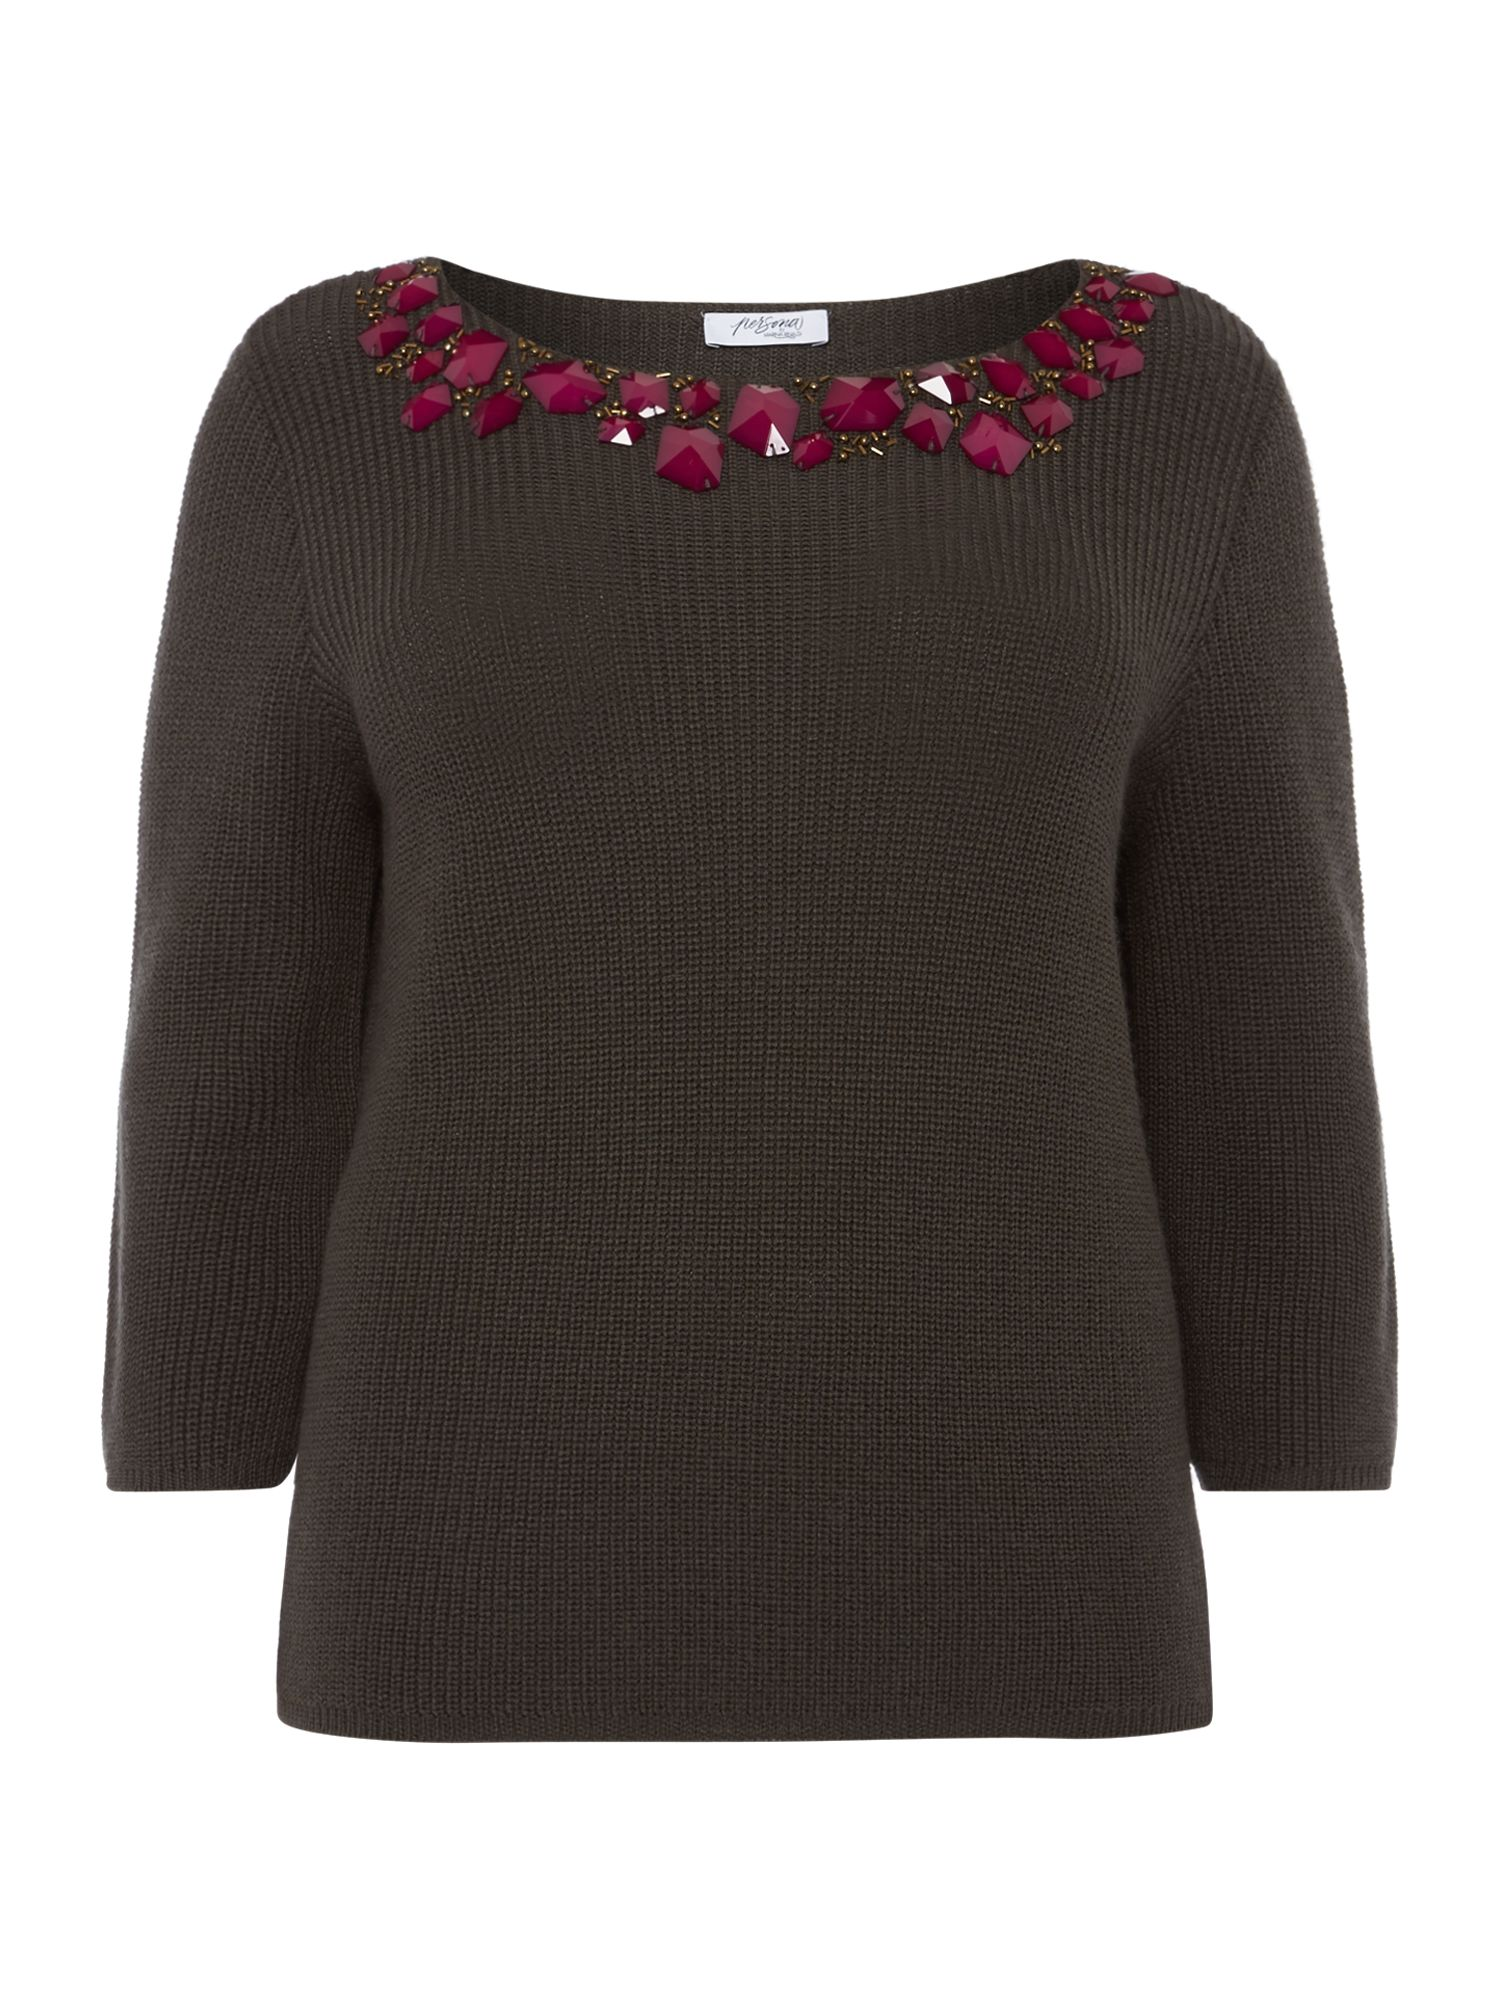 Persona Persona Knitted embellished front jumper, Khaki